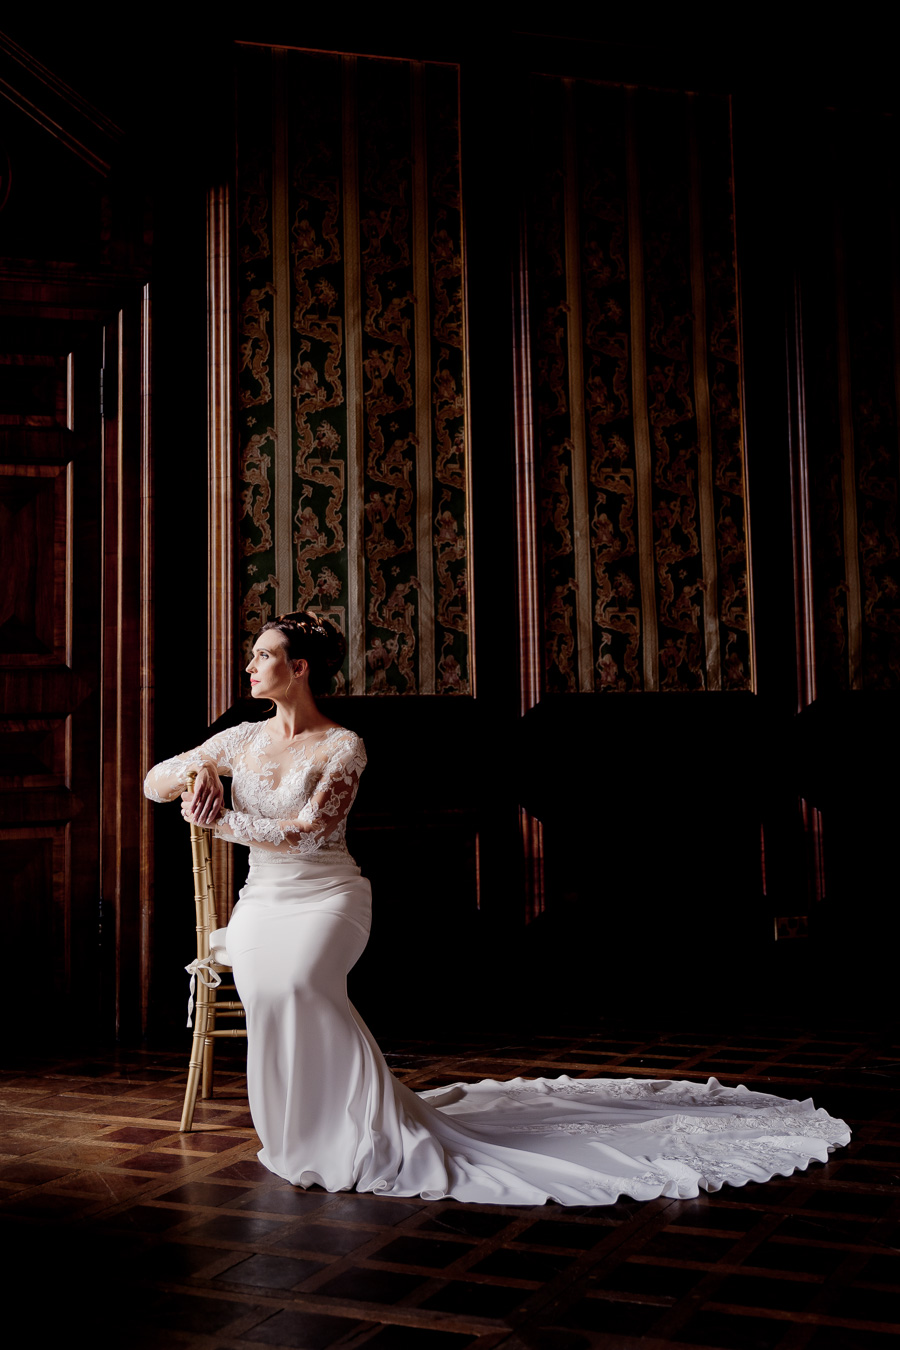 Elegance and glamour, Vanity Fair style. A styled wedding photoshoot from Davenport House. Image Laura May Photography (29)